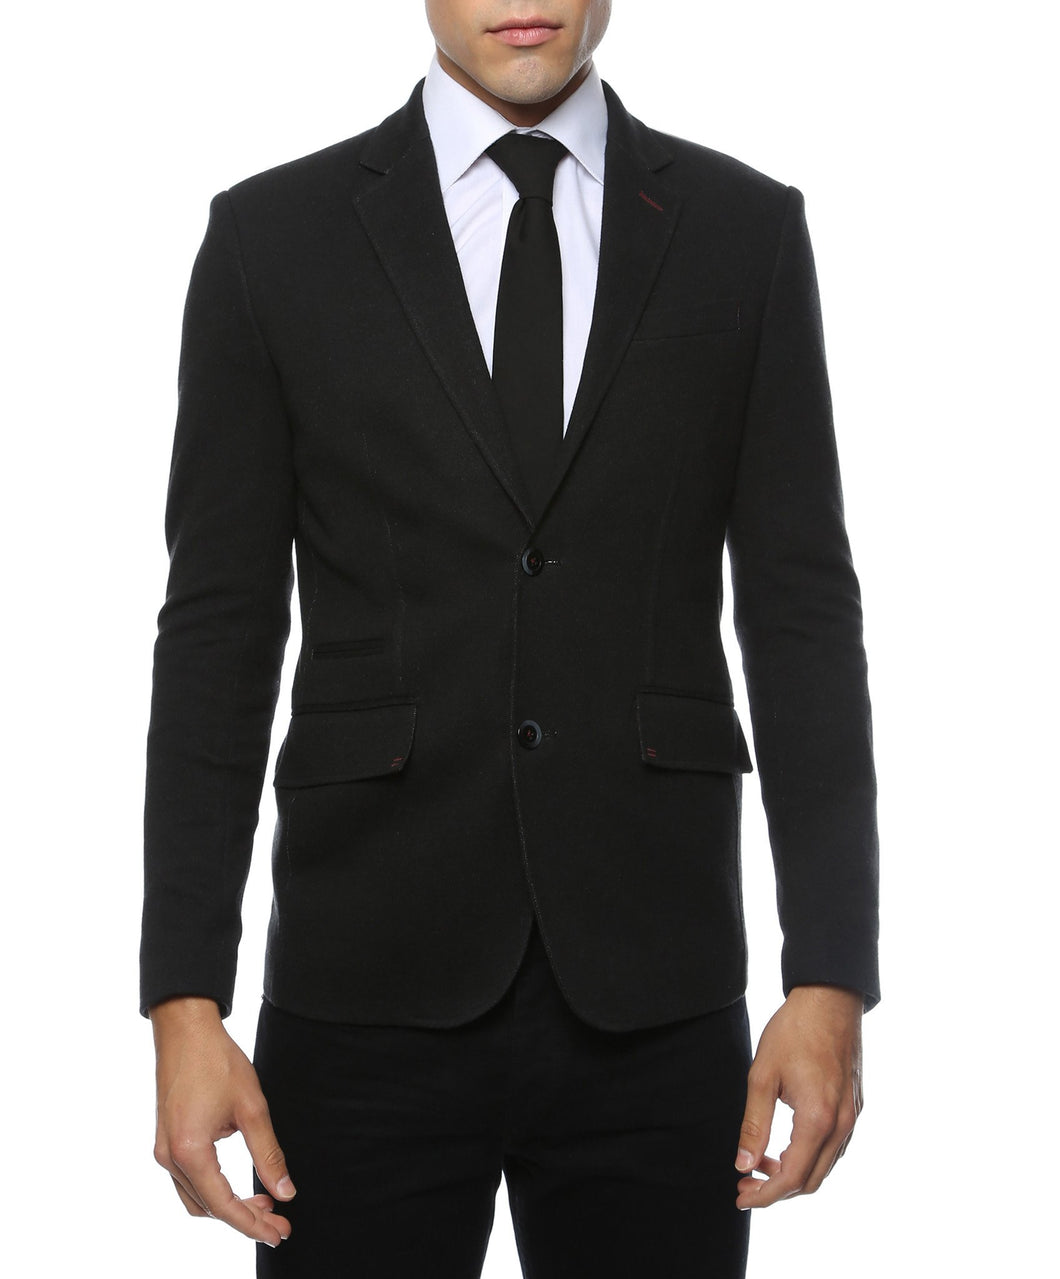 Daytona Black Stretch Slim Fit Blazer - Ferrecci USA